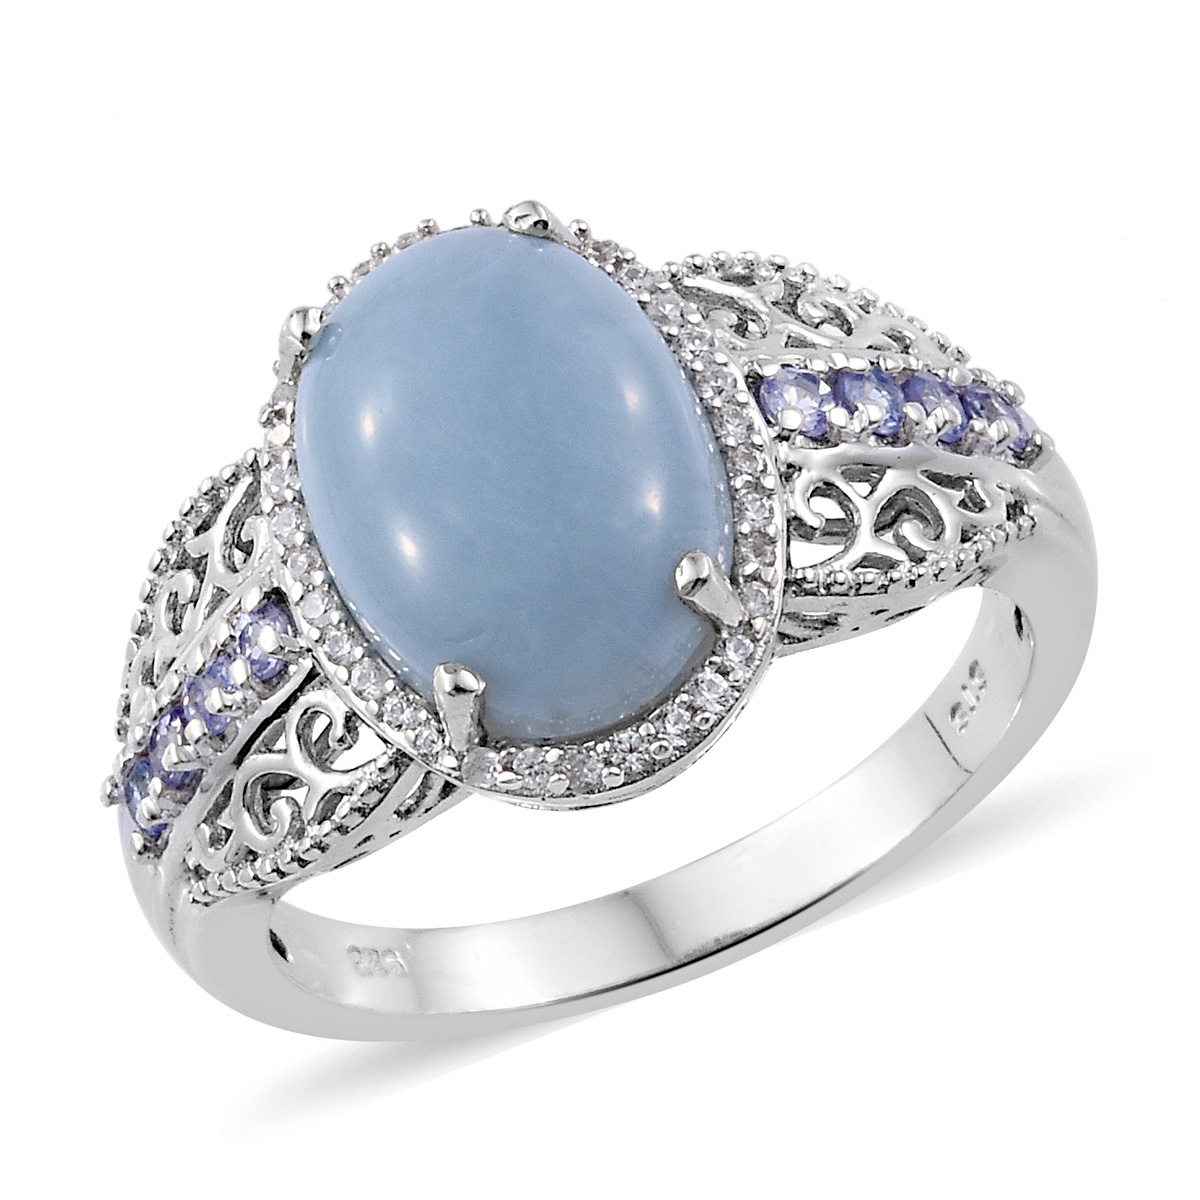 3c21b5987ce India Blue Opal, Multi Gemstone Ring (Size 7.0) in Platinum Over Sterling  Silver 5.15 ctw   Shop LC